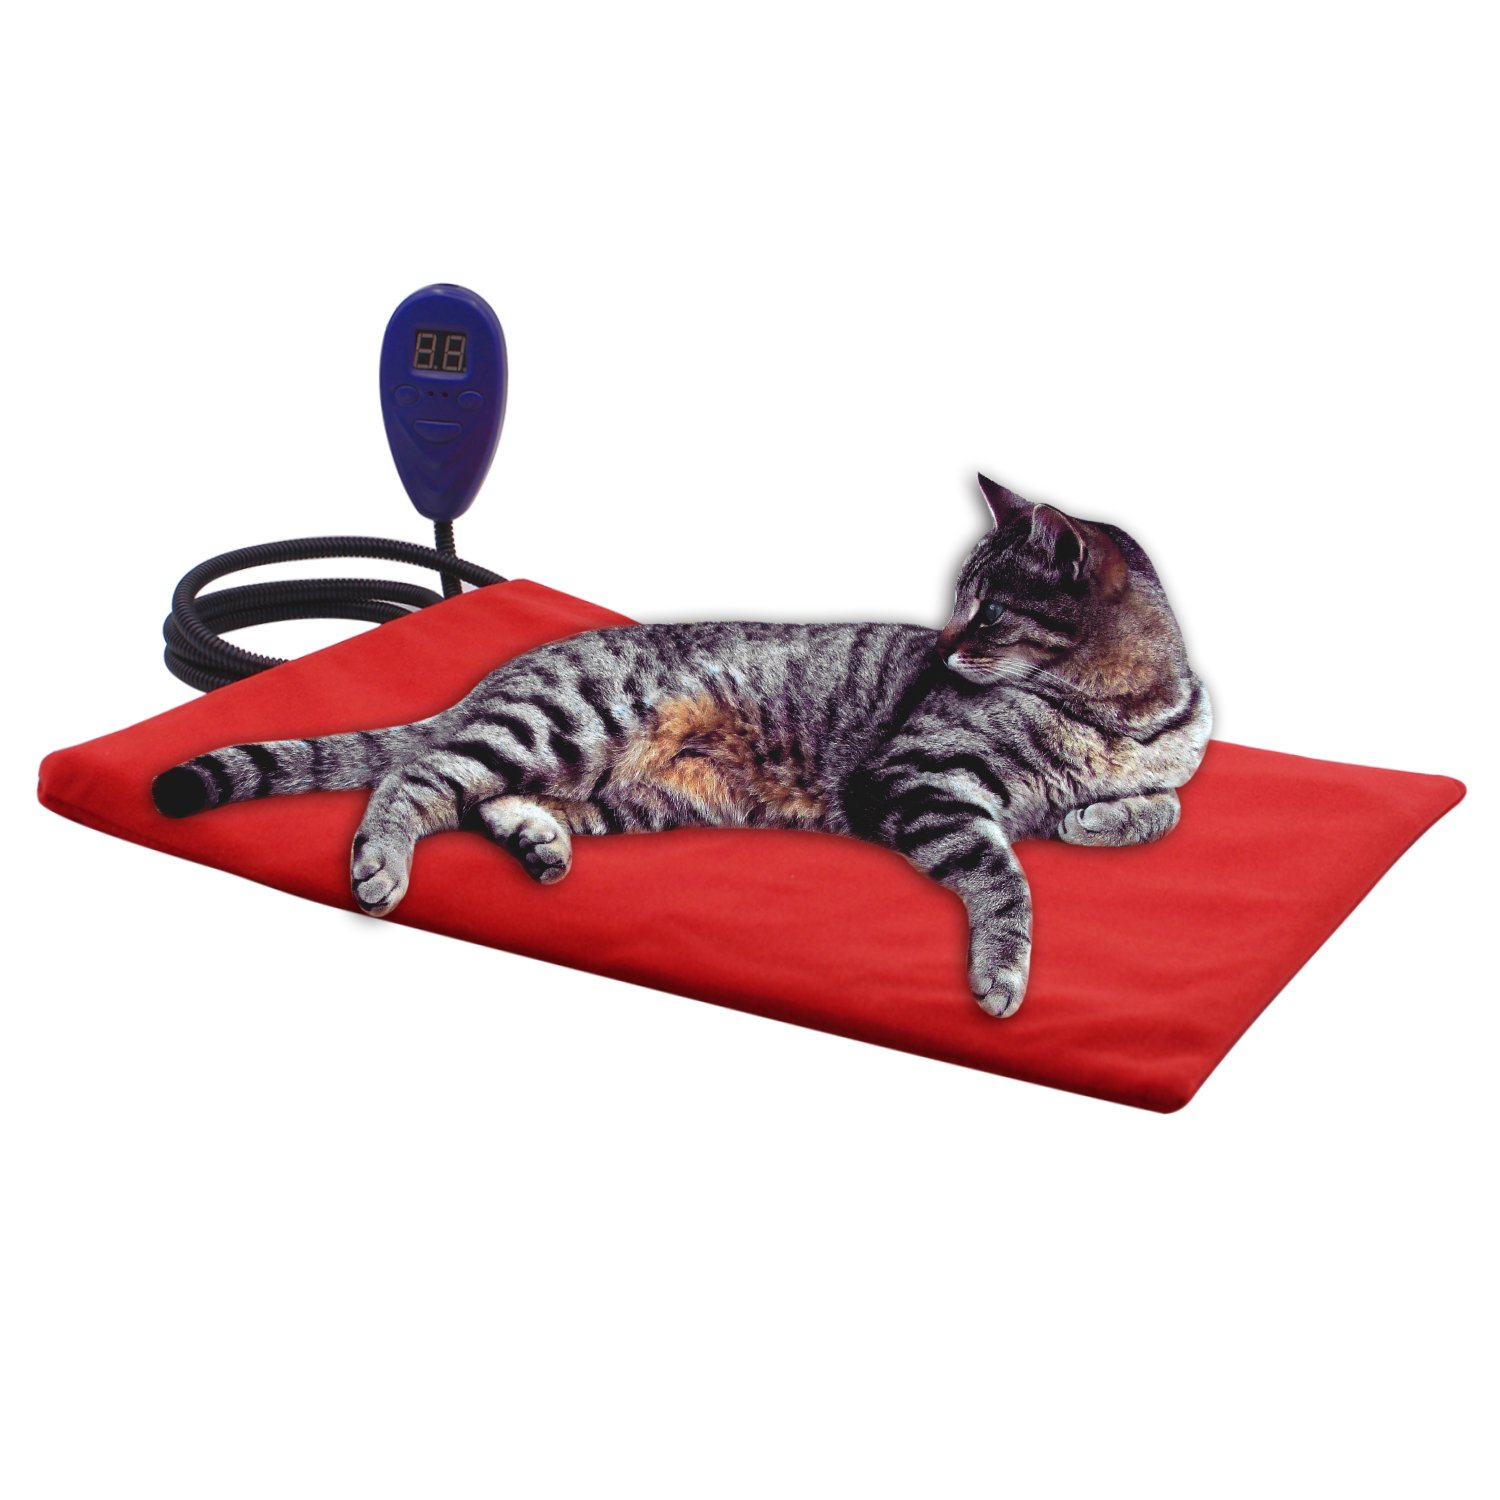 Aiicioo Pet Bed Heating Pad Electric Heating Pad For Dogs Cats Waterproof Adjustable Warming Mat with Chew Resistant Cord (Red, 16'' x 12'')